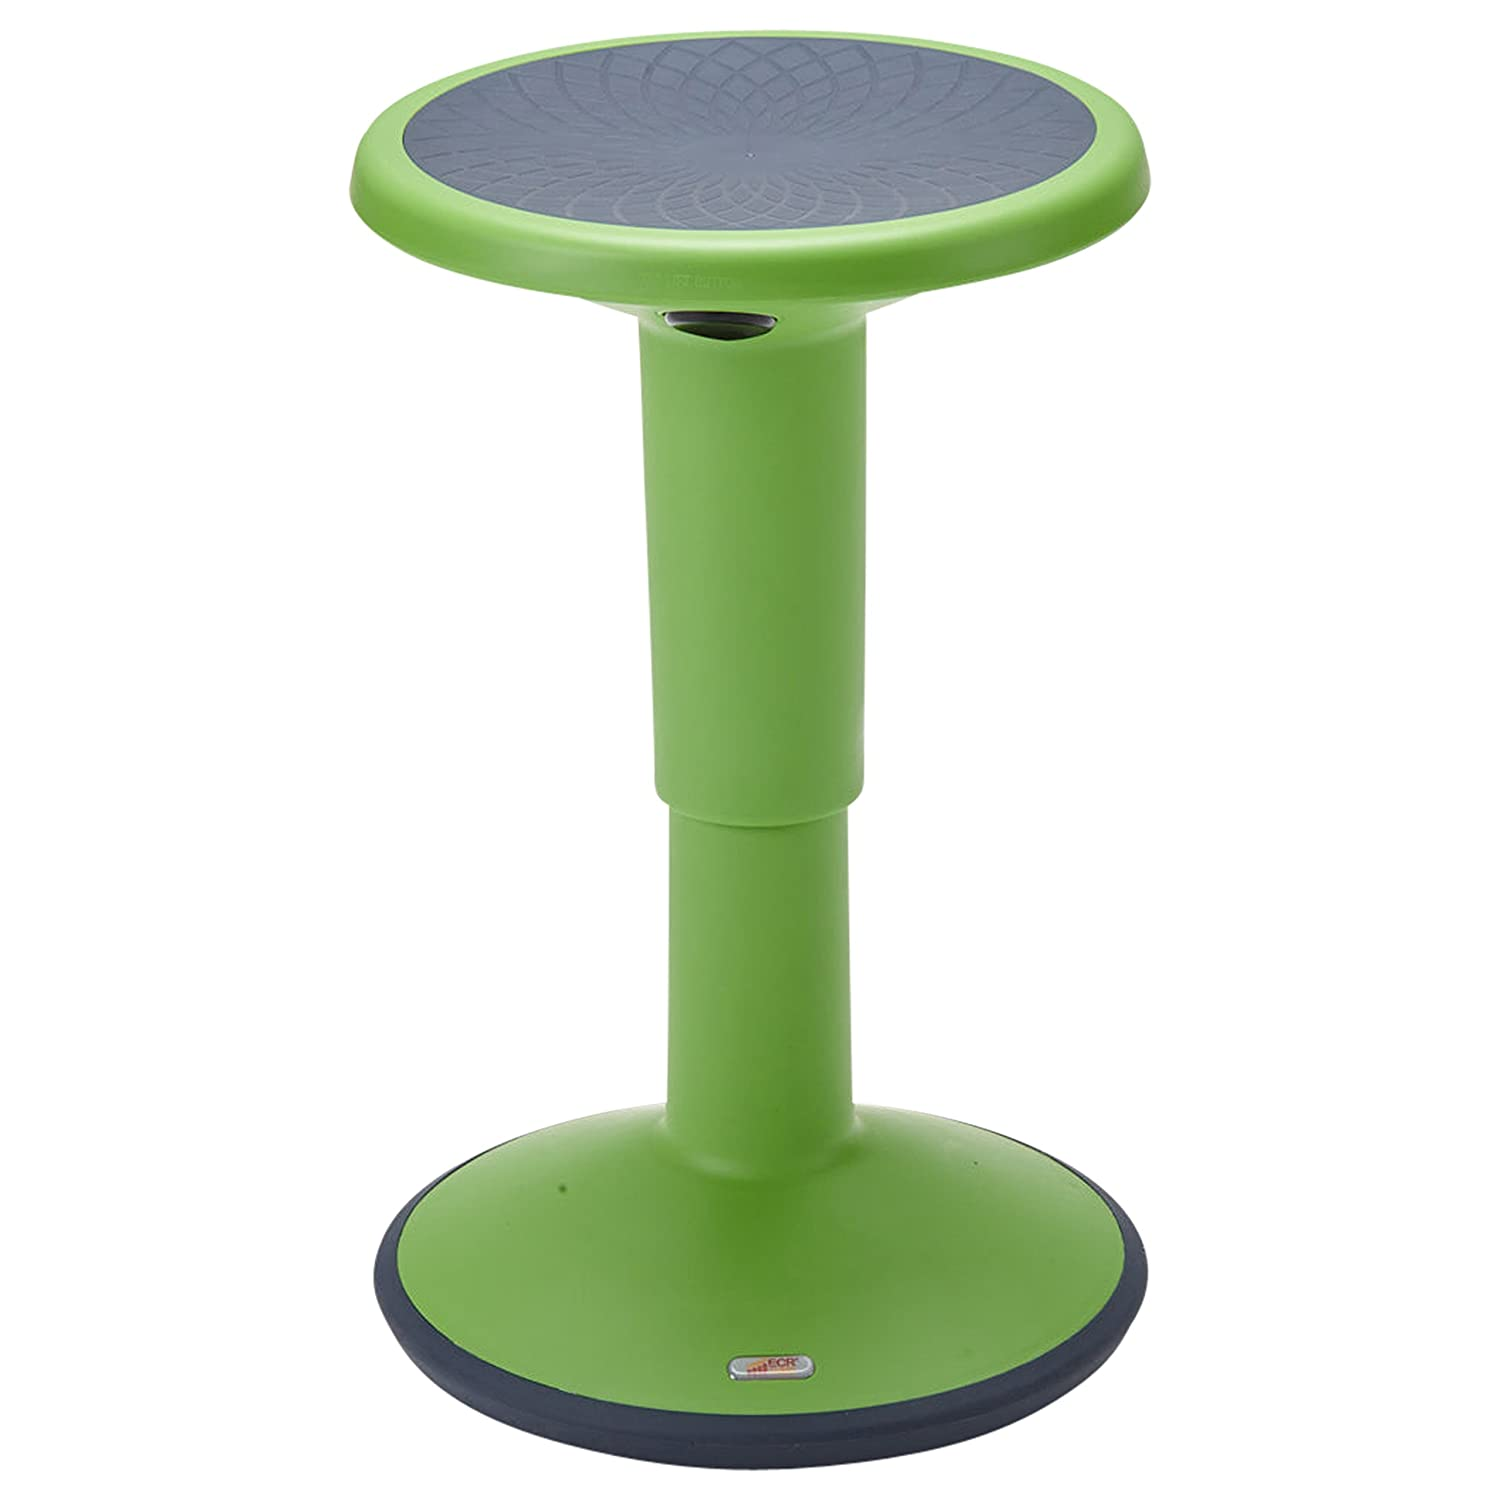 ECR4Kids SitWell Height-Adjustable Wobble Stool - Active Flexible Seating Chair for Kids and Adults - School and Office, Grassy Green